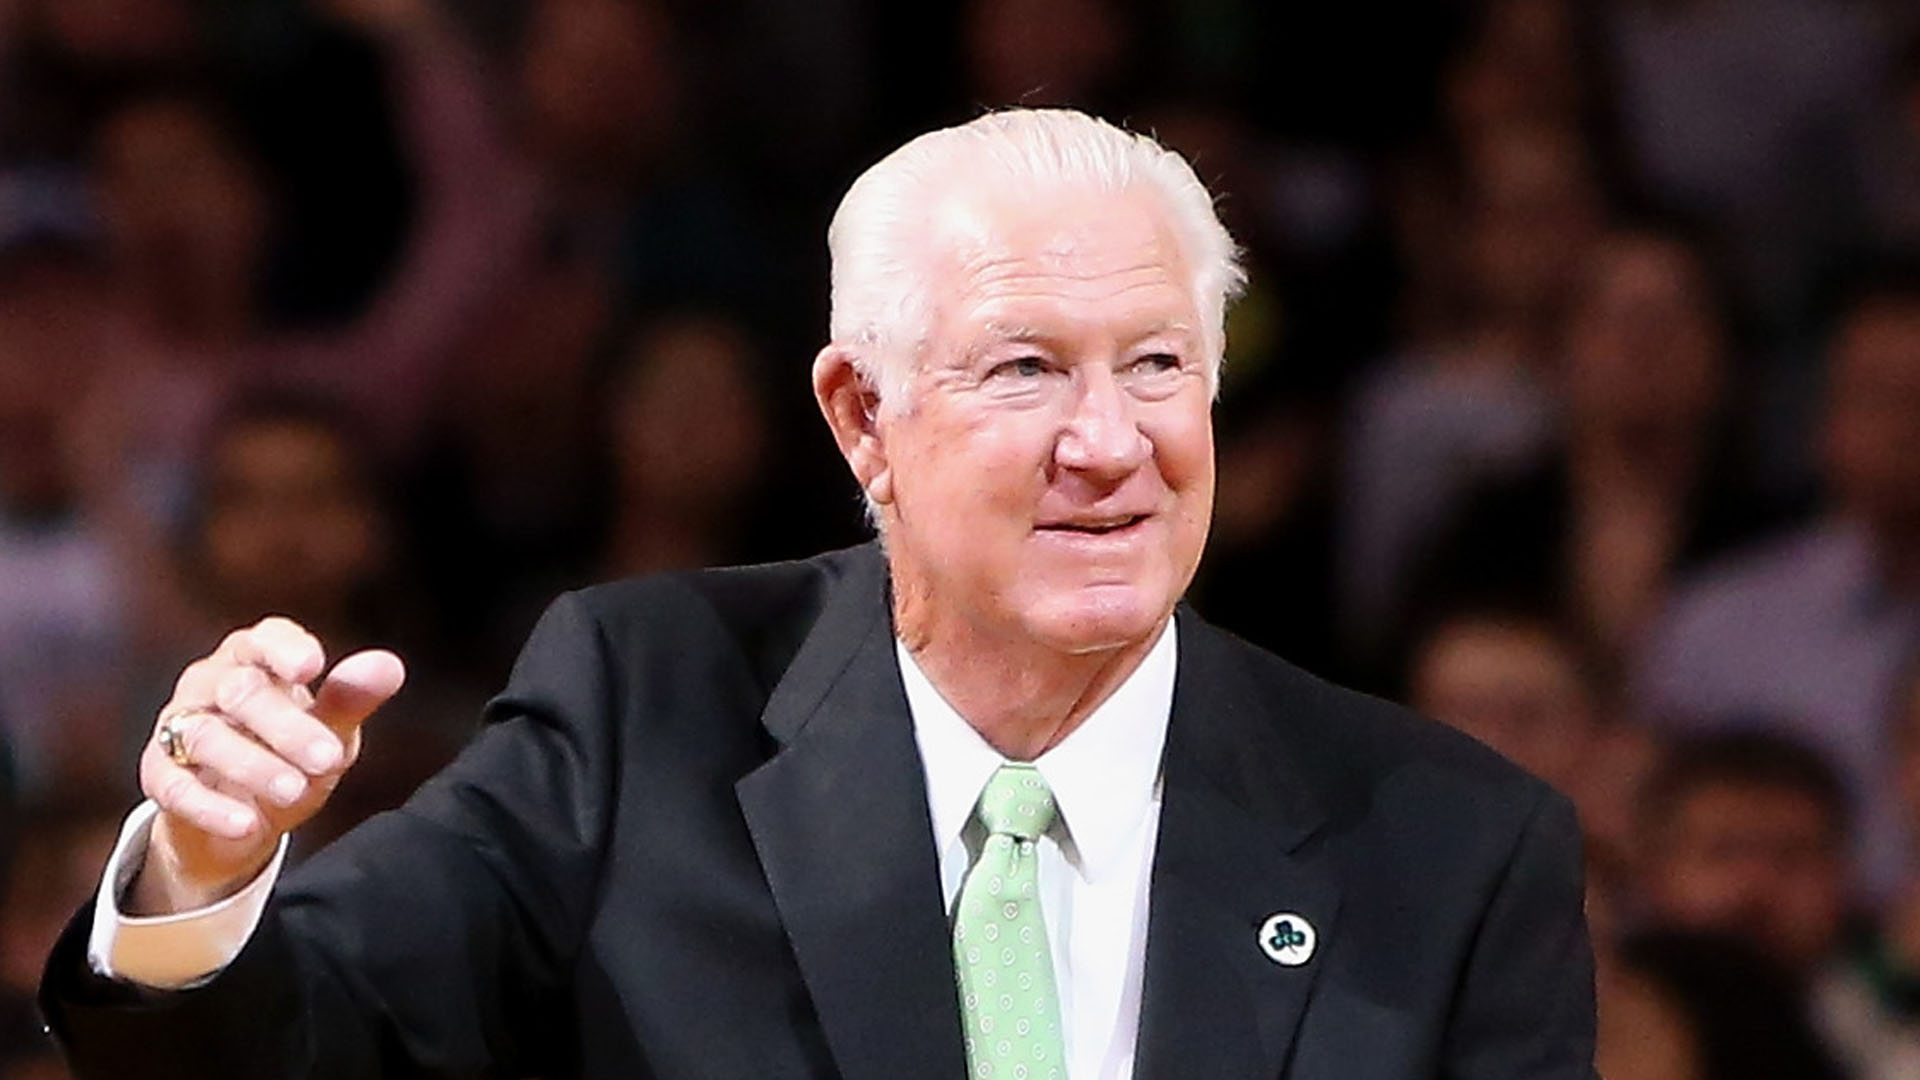 Celtics Hall of Famer John Havlicek dies at 79